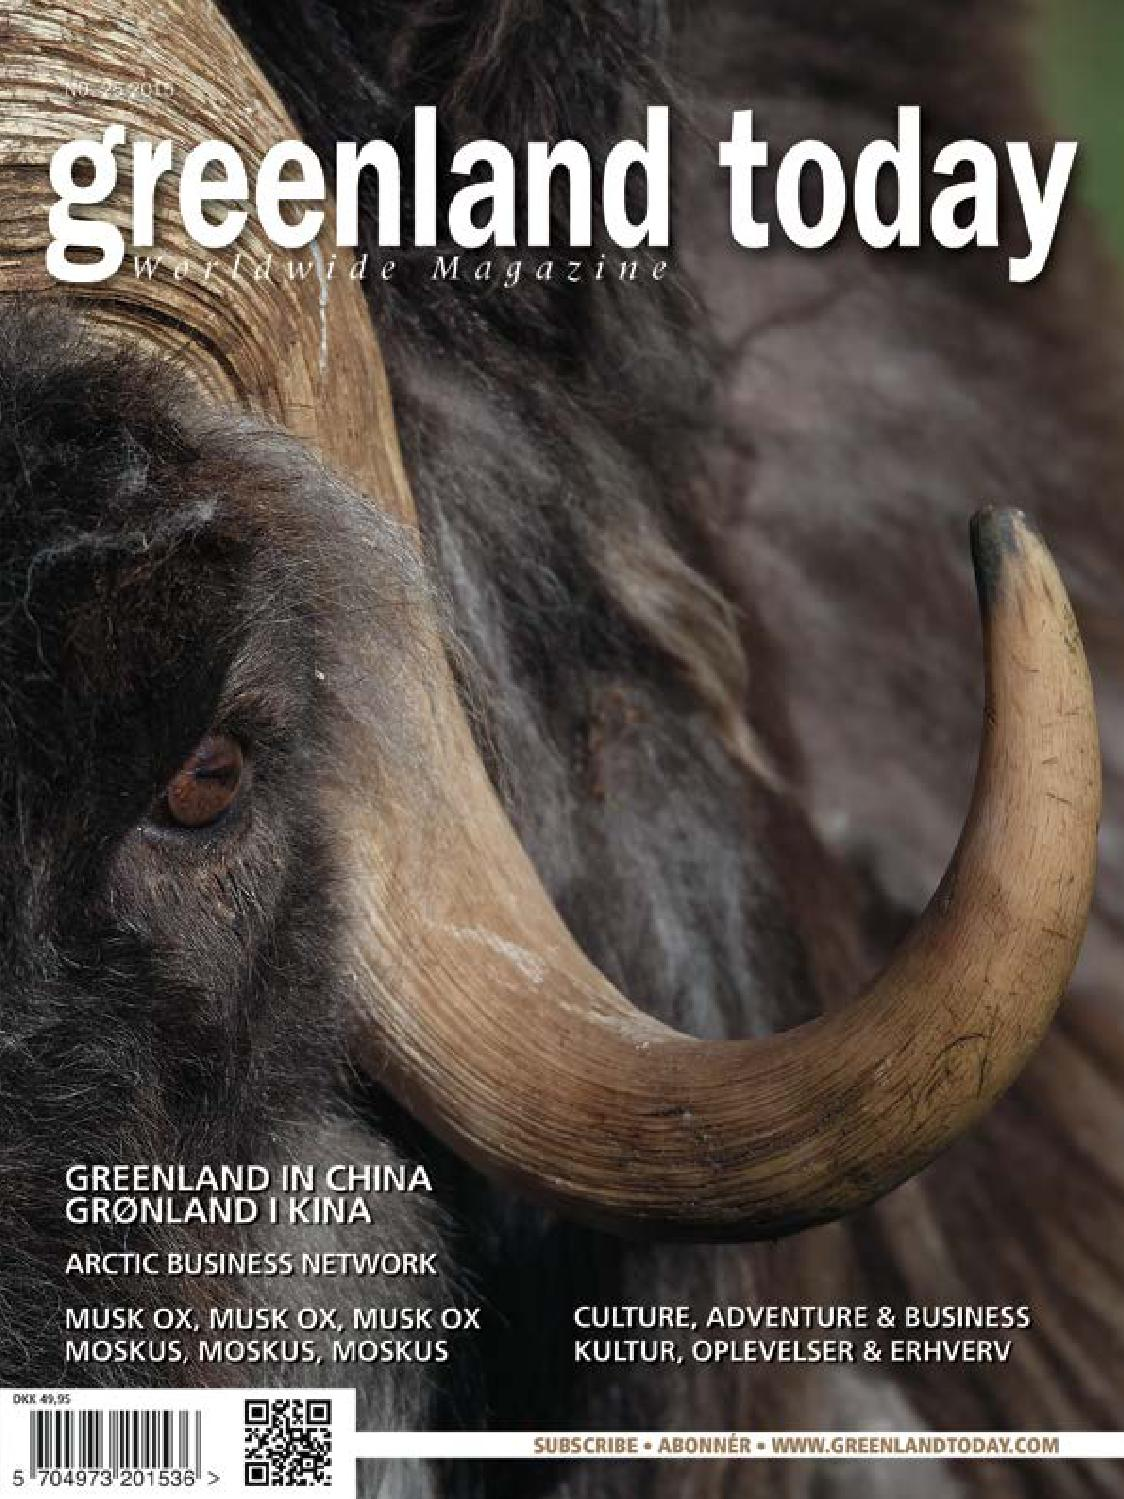 Greenland today no 24 by greenland today   issuu